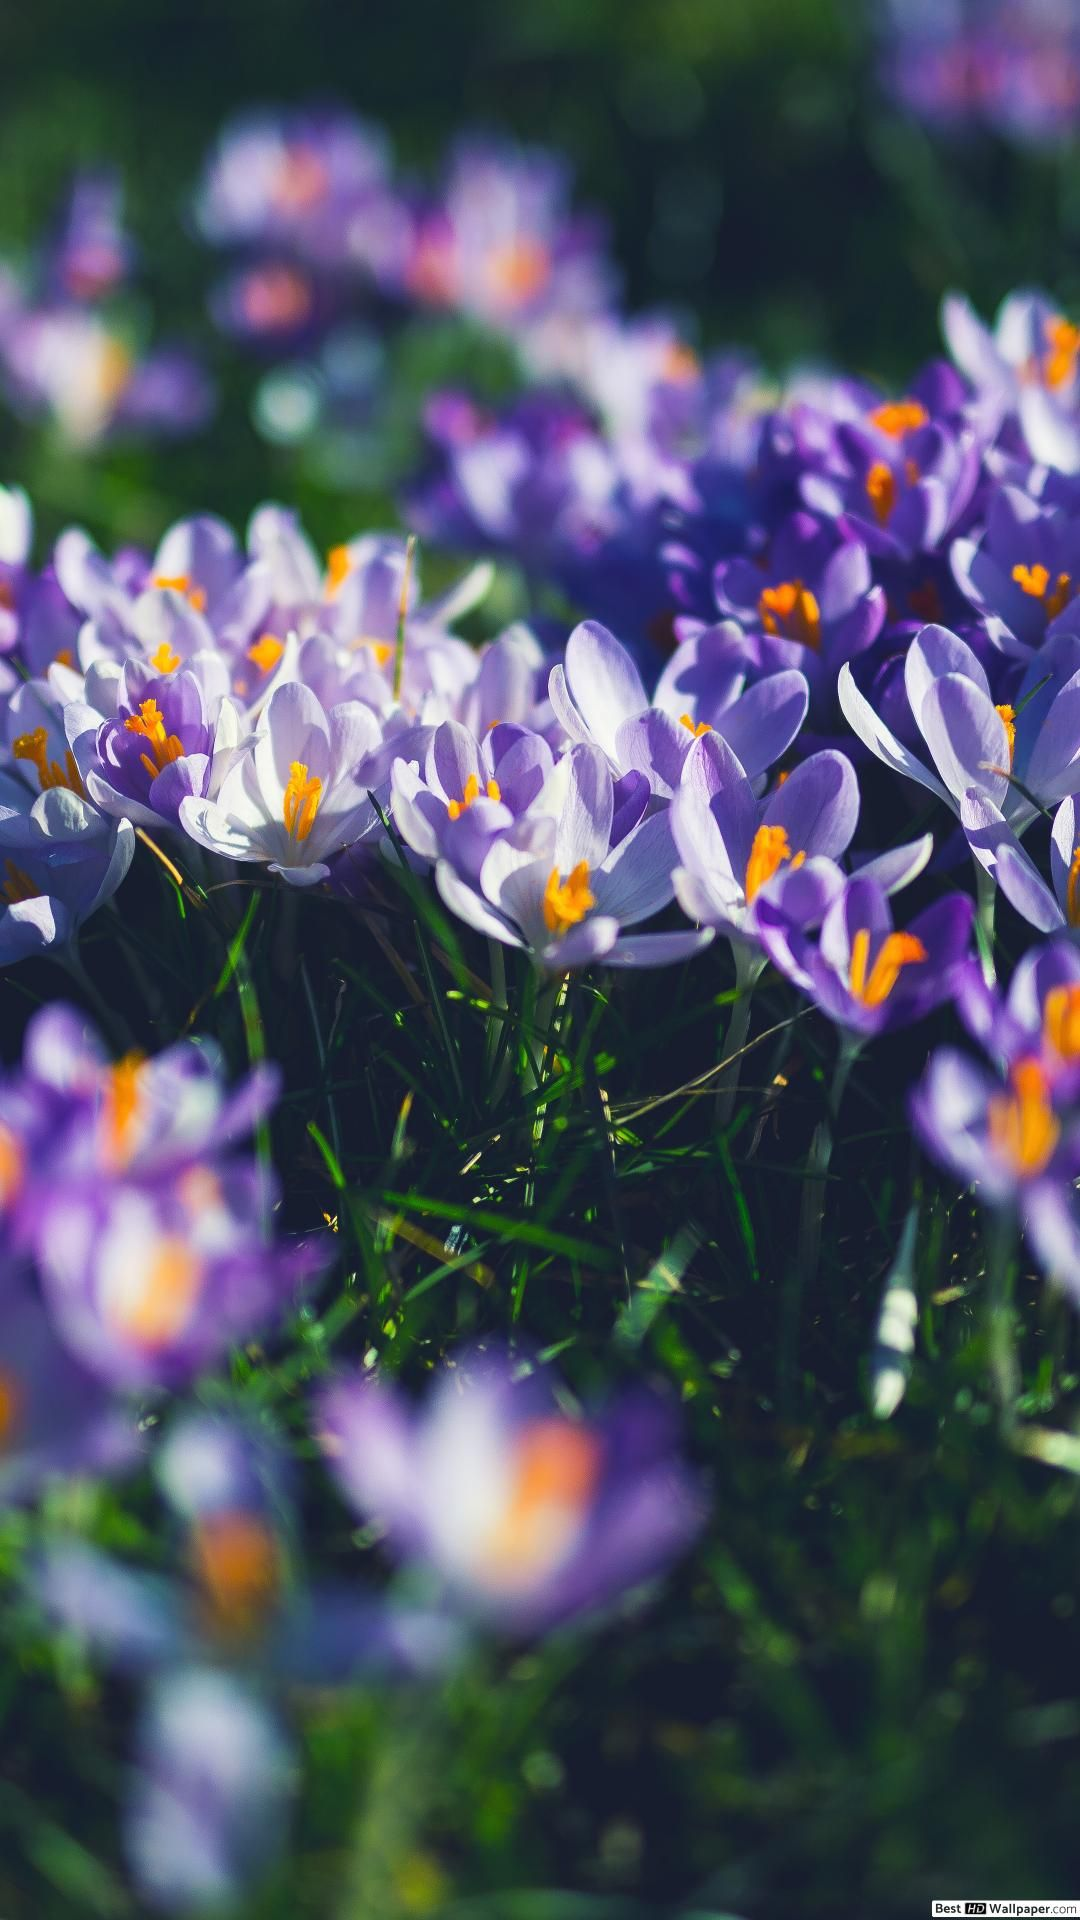 The Crocus Pictures Are Beautiful